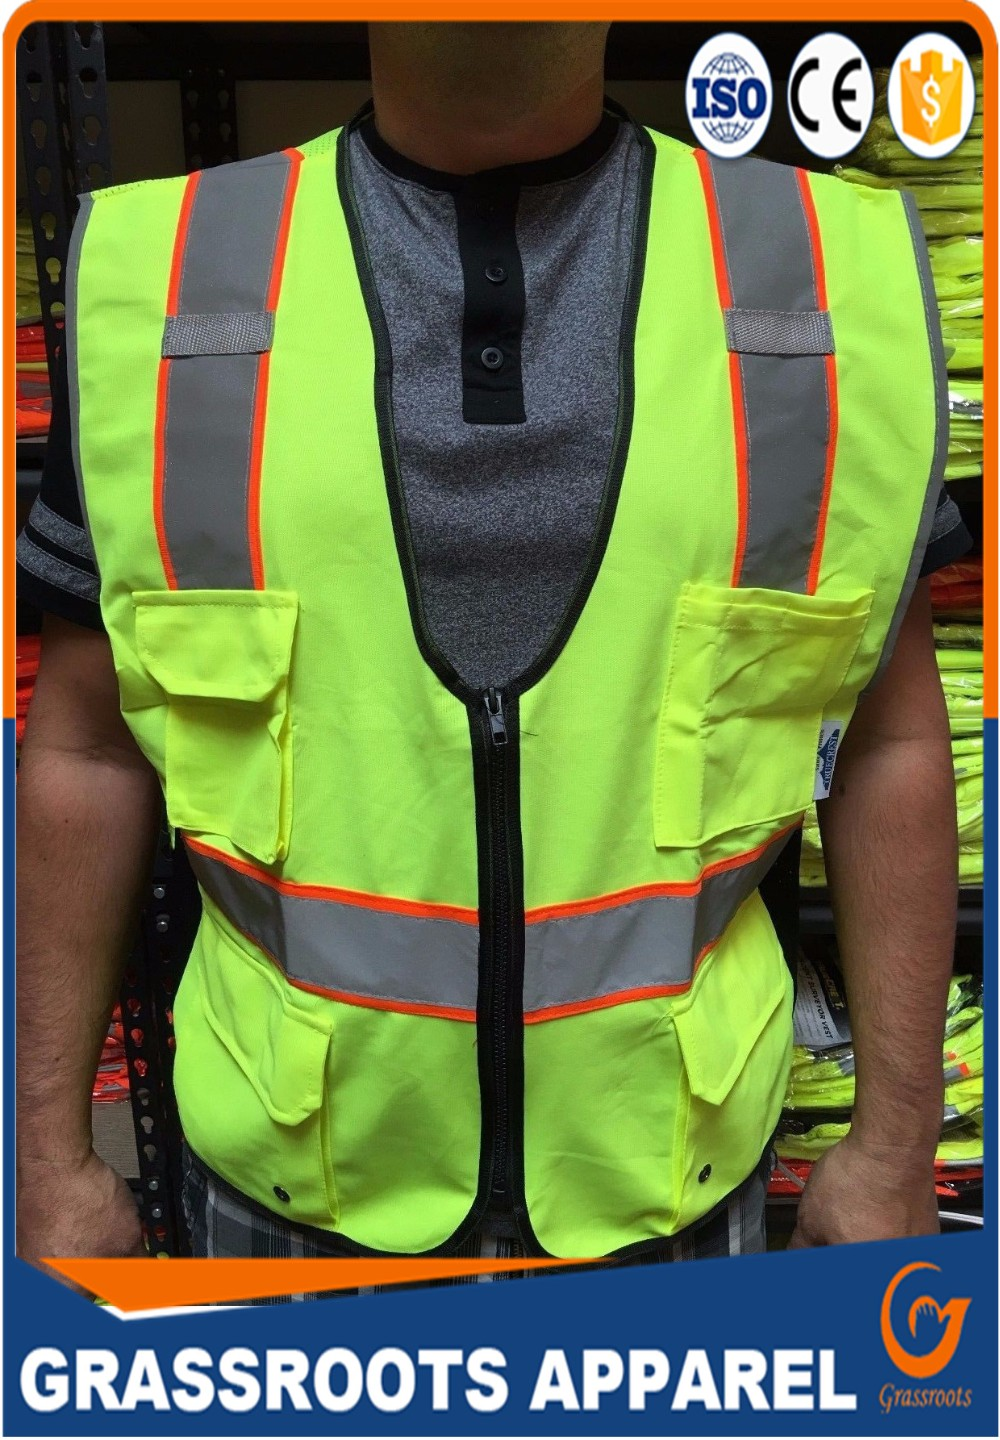 Reflective Strips cool safety vest 2 Pockets Neon Green Safety Vest security clothes made in china factory price good quality